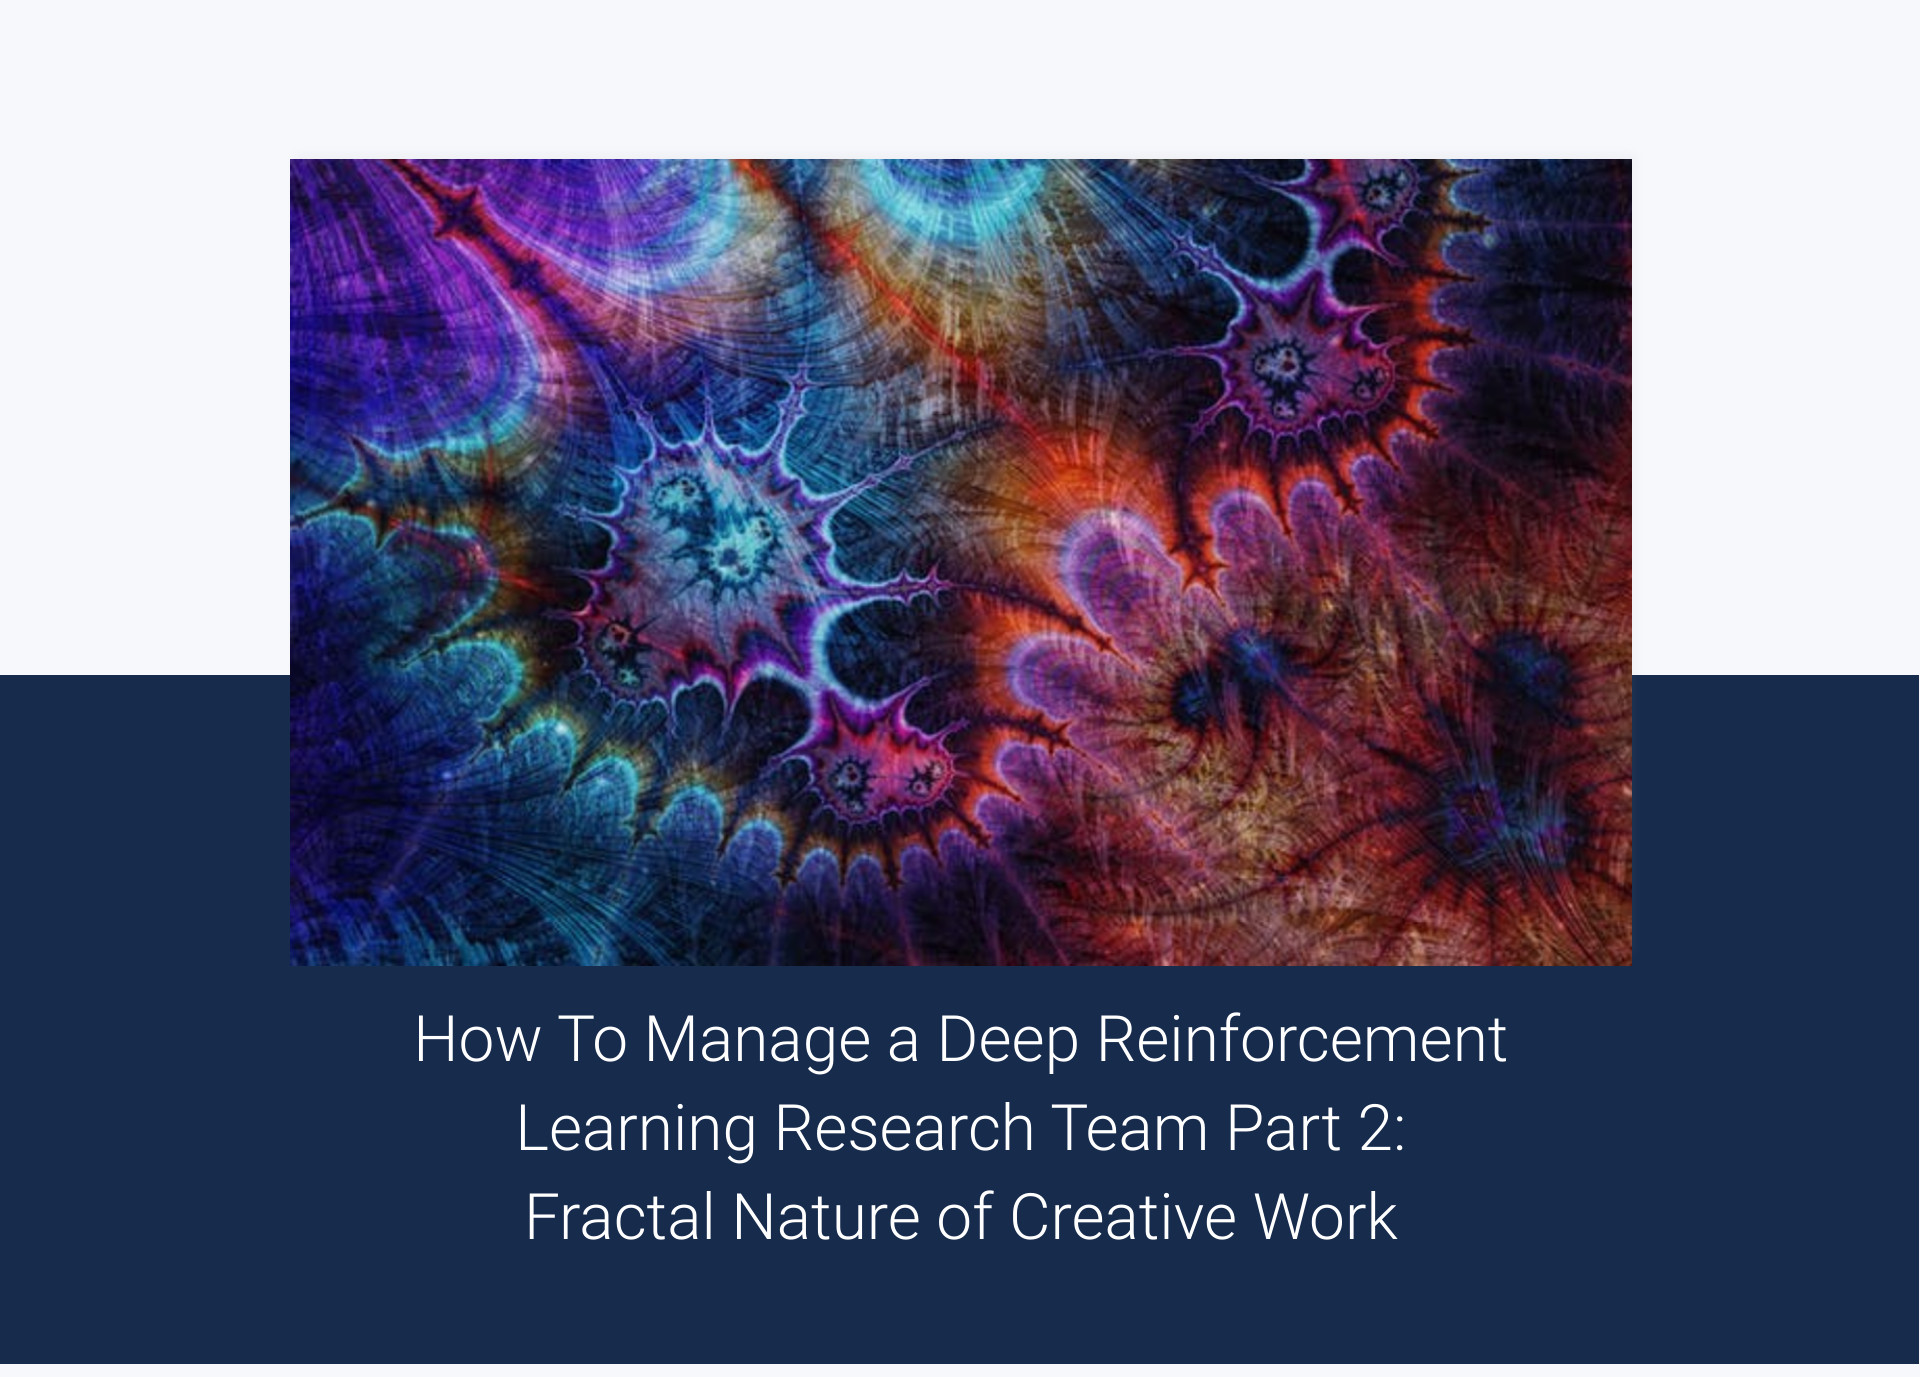 How To Manage a Deep Reinforcement Learning Research Team Part 2: Fractal Nature of Creative Work